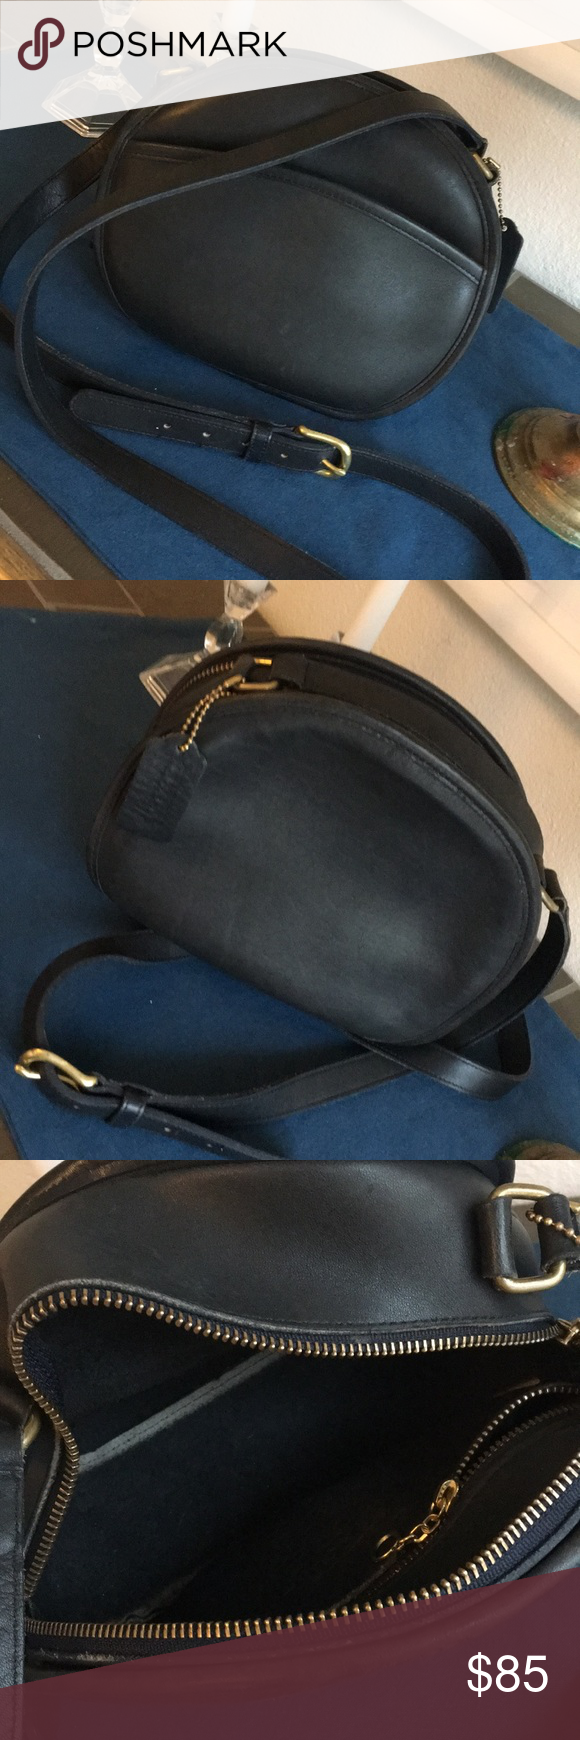 69d3c459807e Vintage Coach Medium Chester Canteen Shoulder Bag H4C 9901. Black leather w  brass hardware. Very good condition. Hard to let this one go but I ve got  so ...